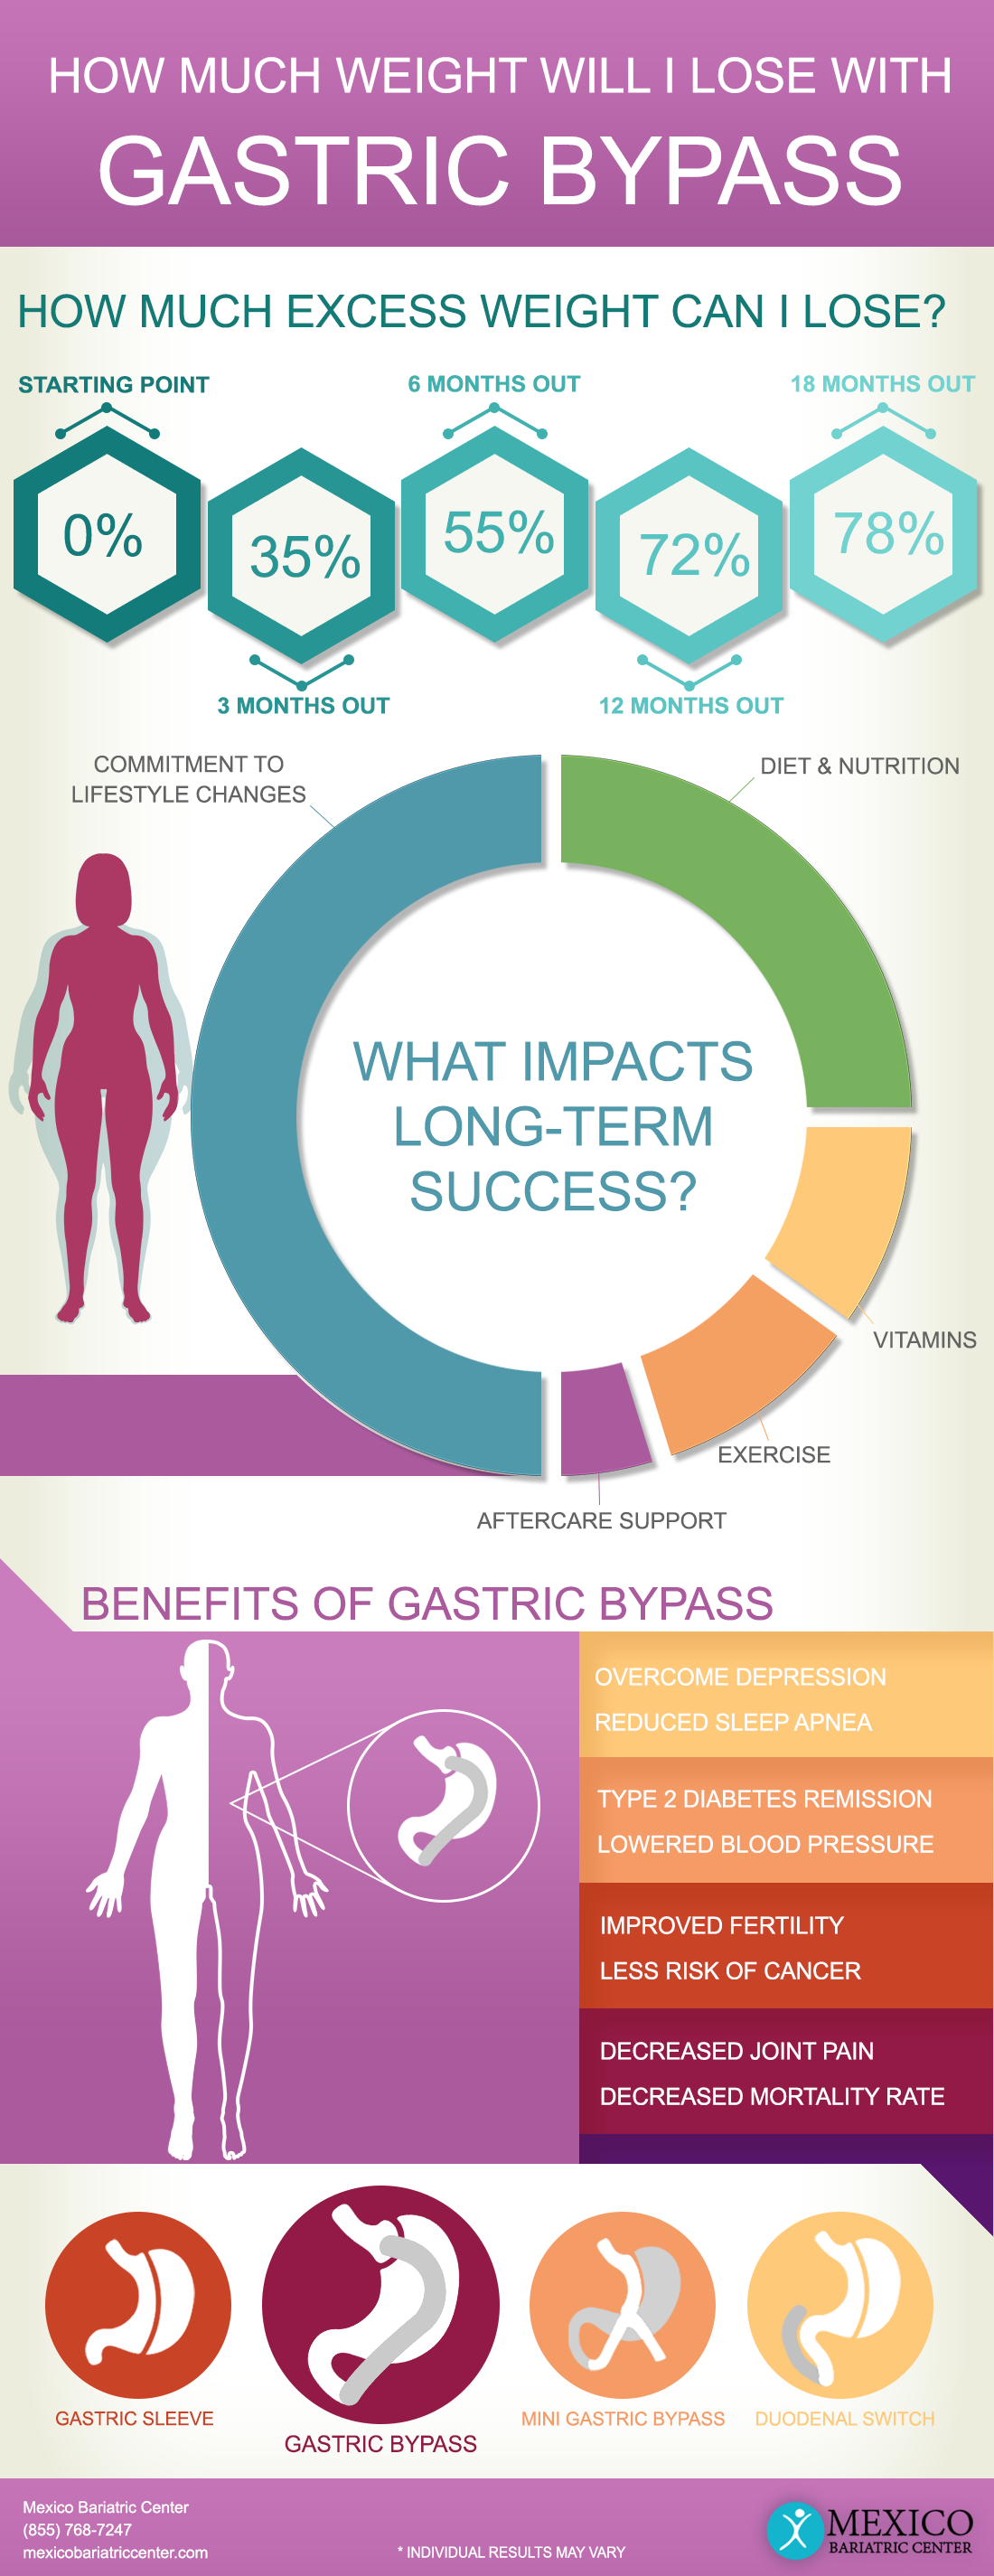 How Much Weight Will I Lose with Gastric Bypass Surgery RNY